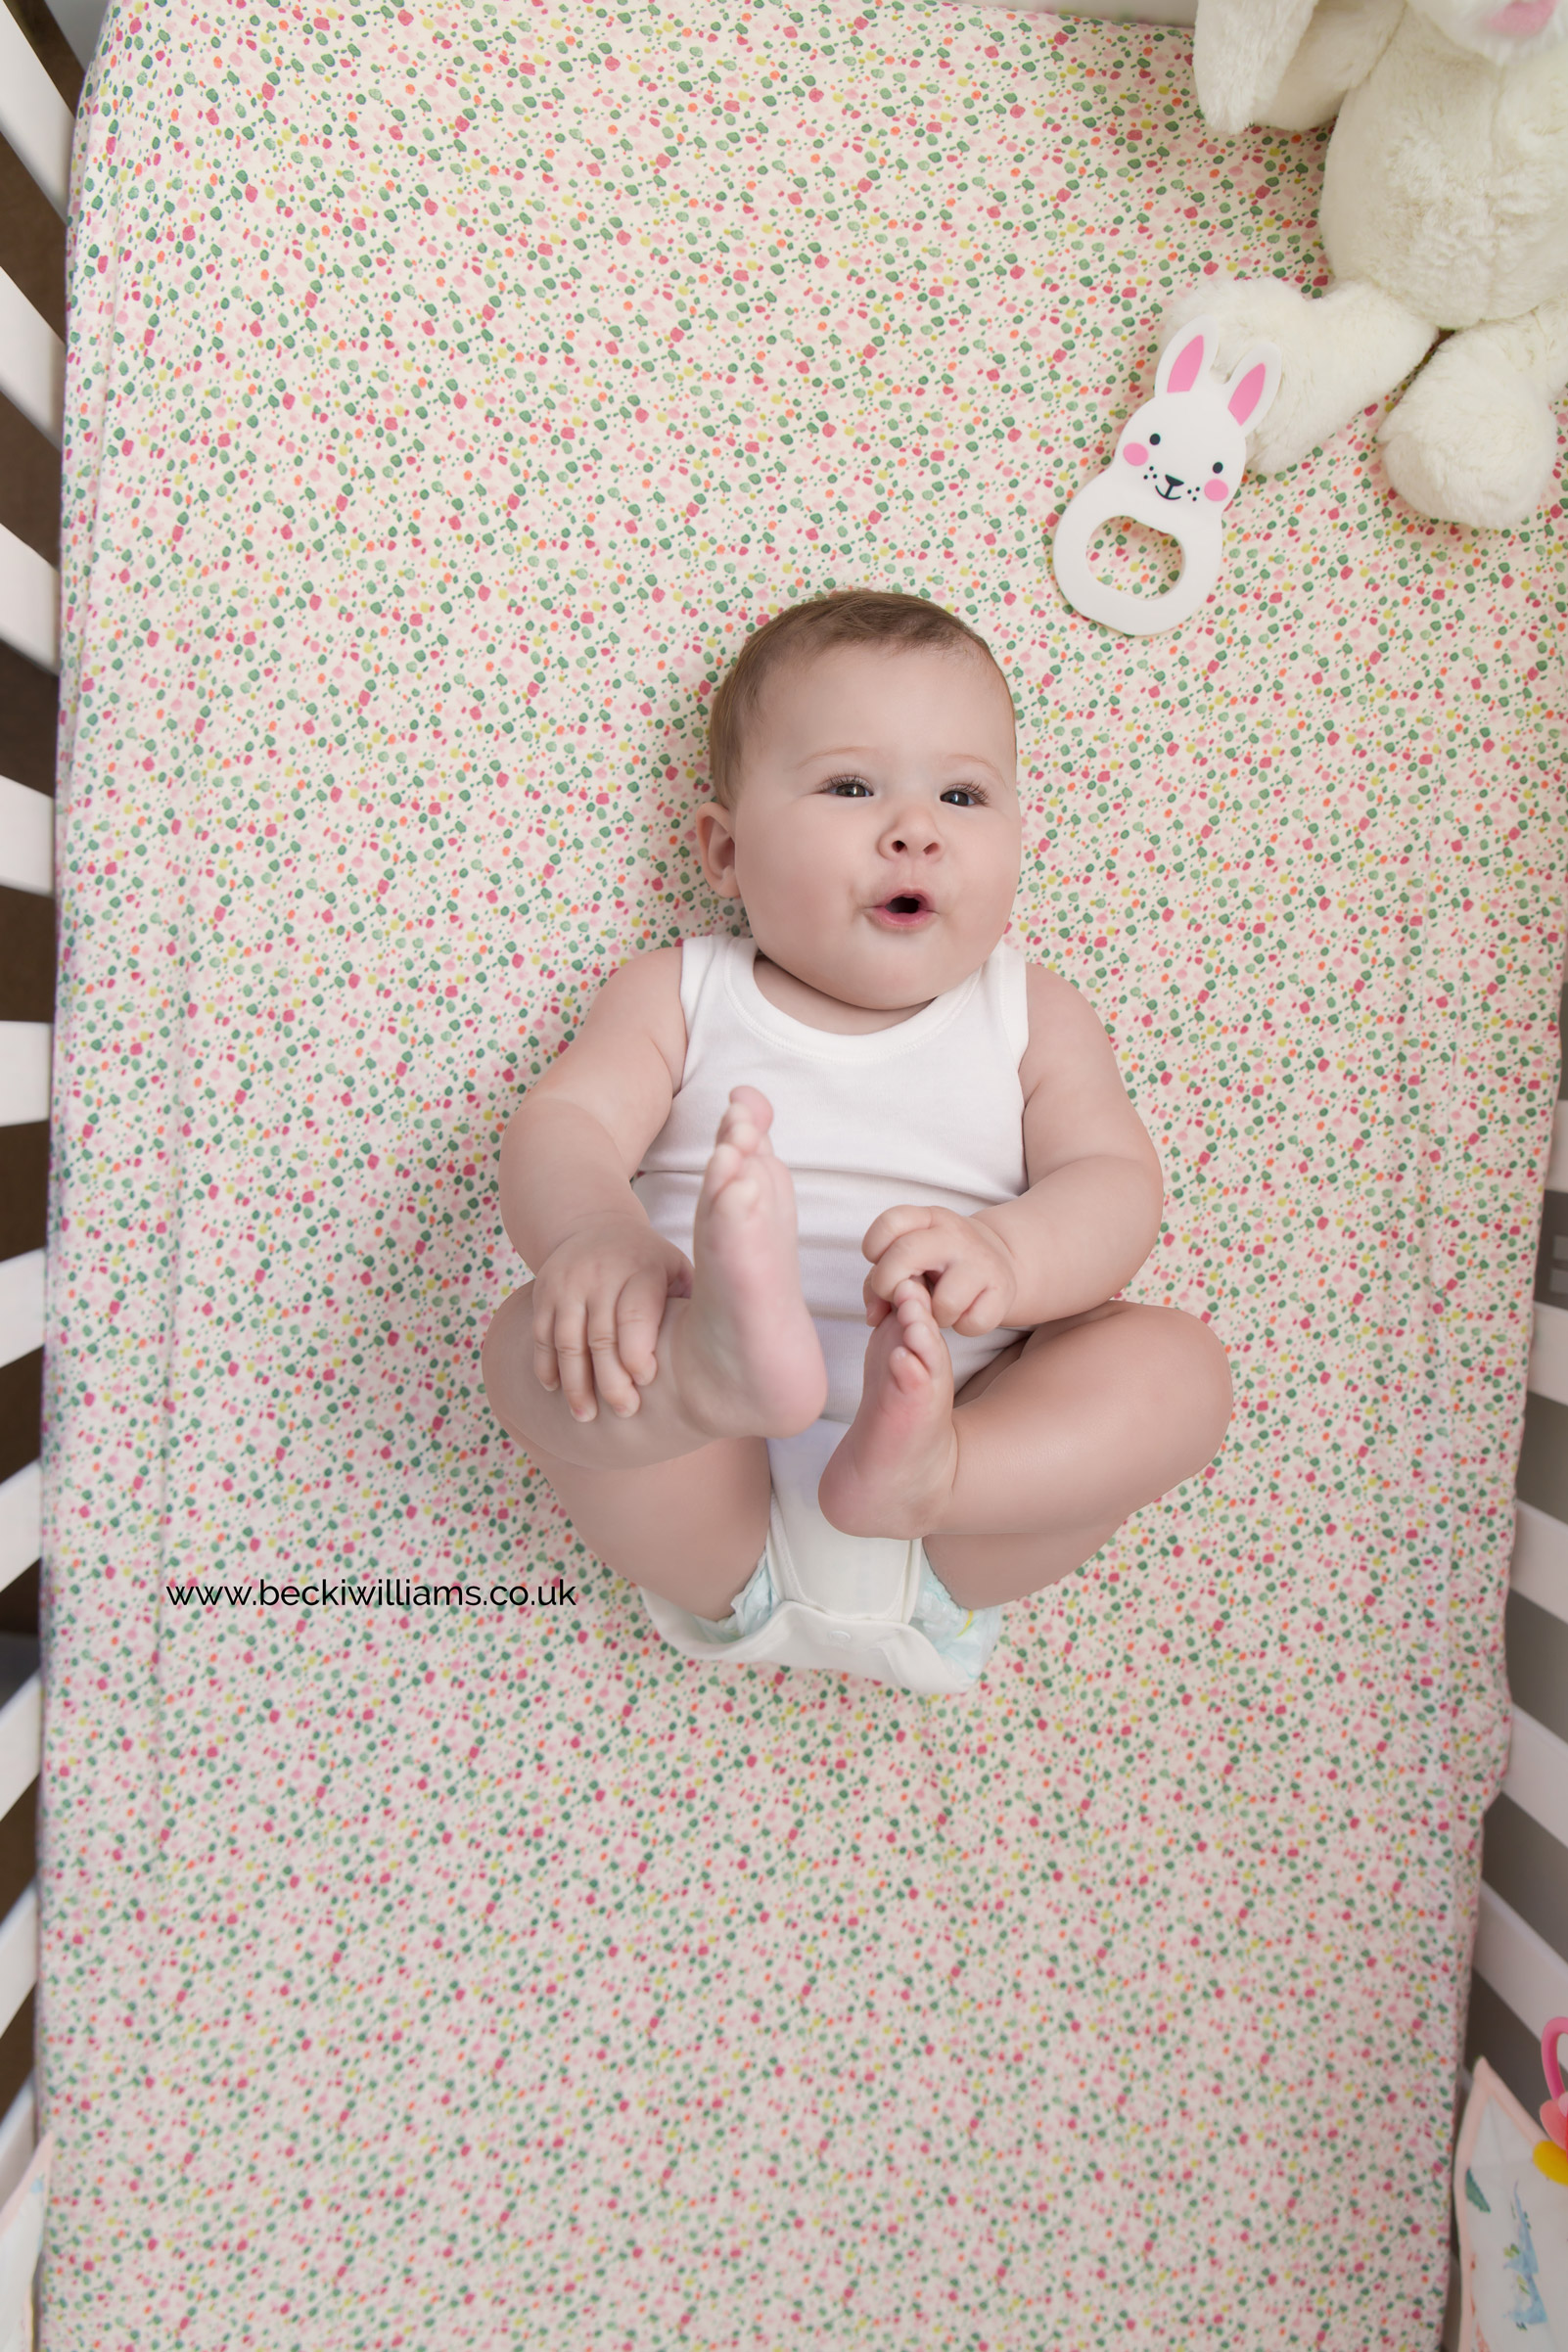 baby-photography-6-month-in-hertfordshire-girl-natural-at-home-cot.jpg